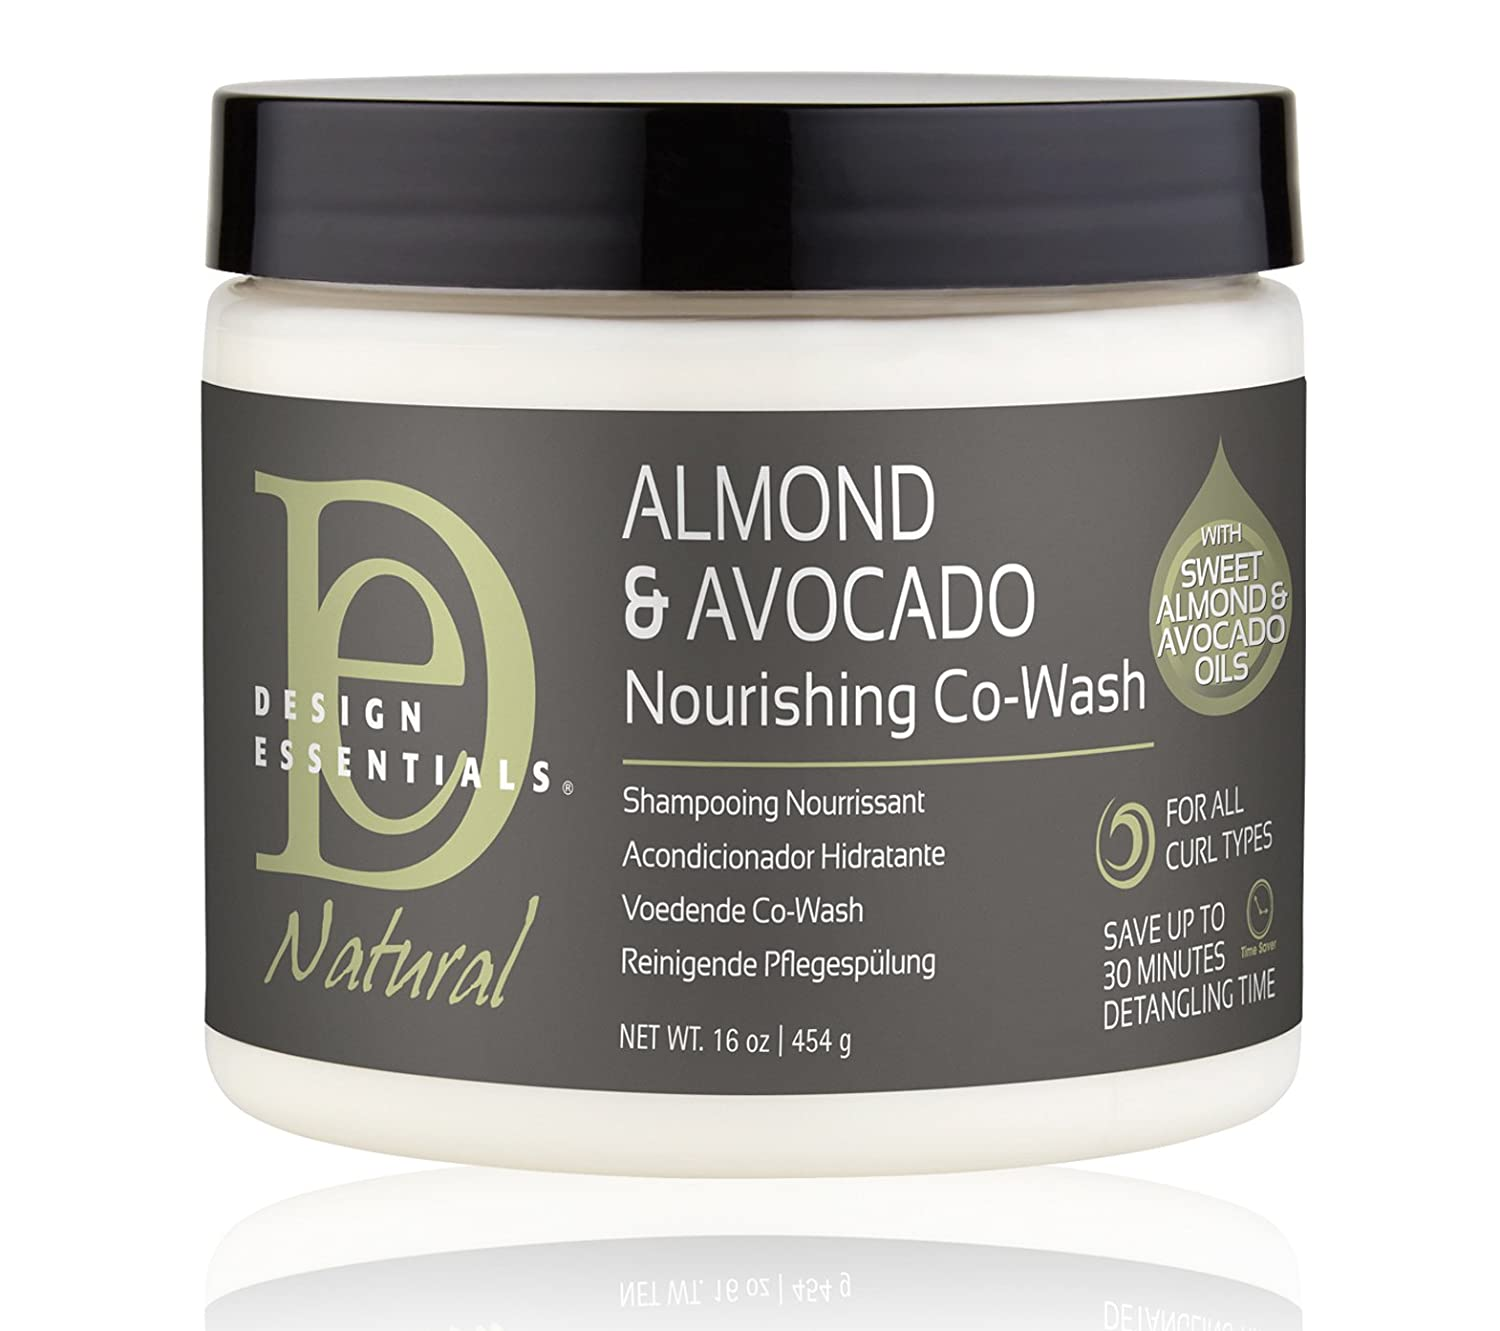 Bilderesultat for design essentials almond and avocado co-wash